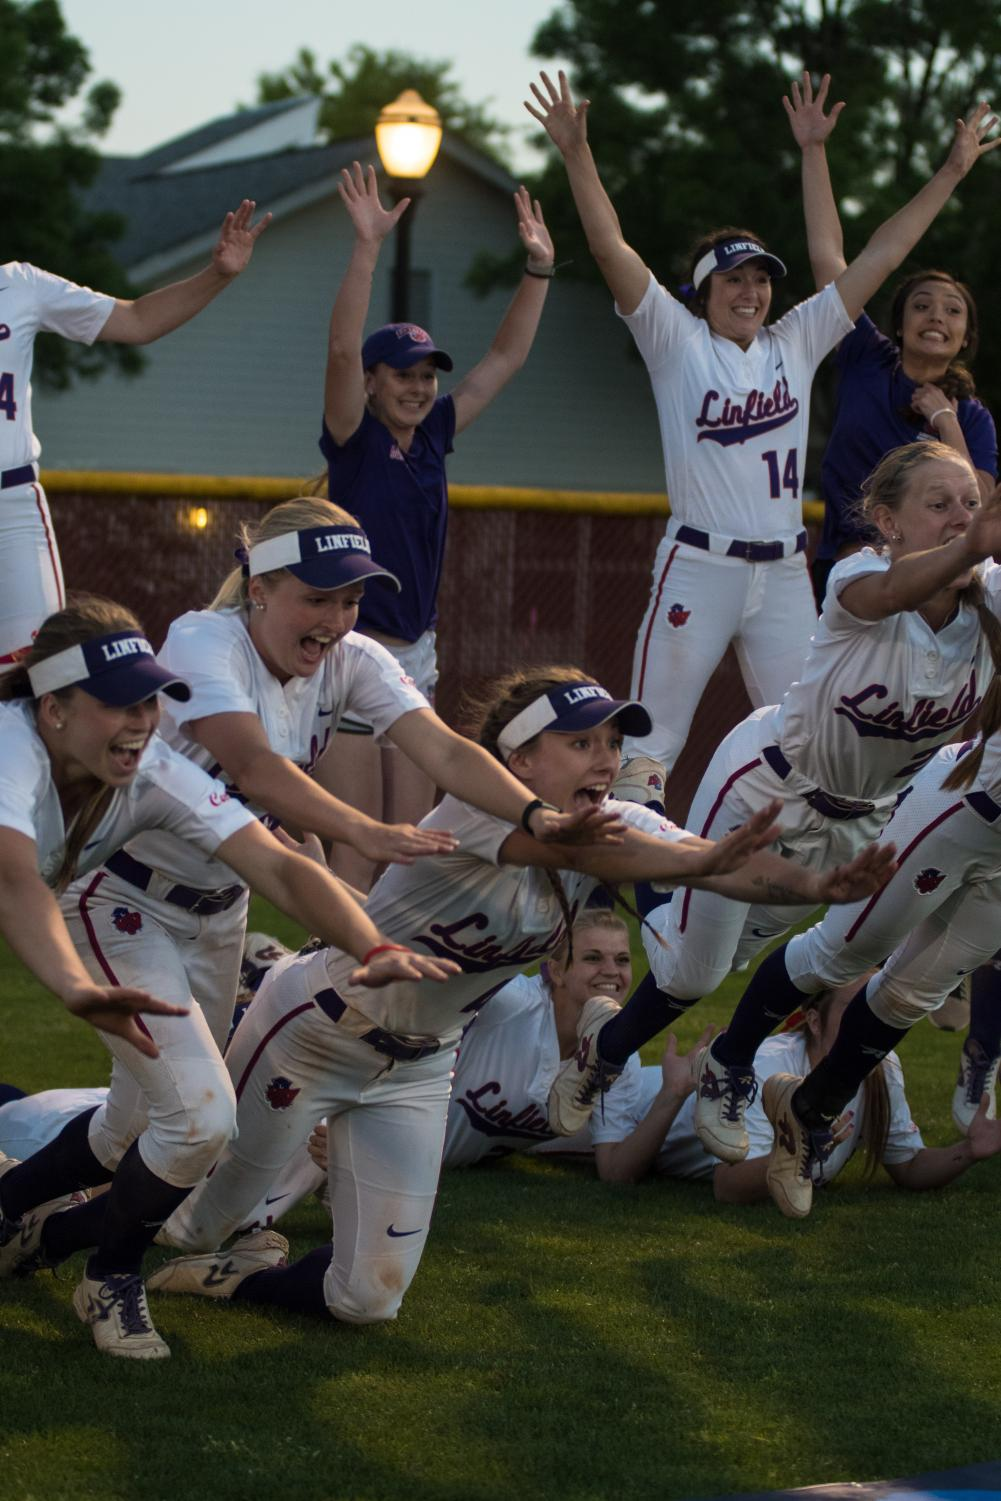 The Wildcats sliding into an after championship team photo.